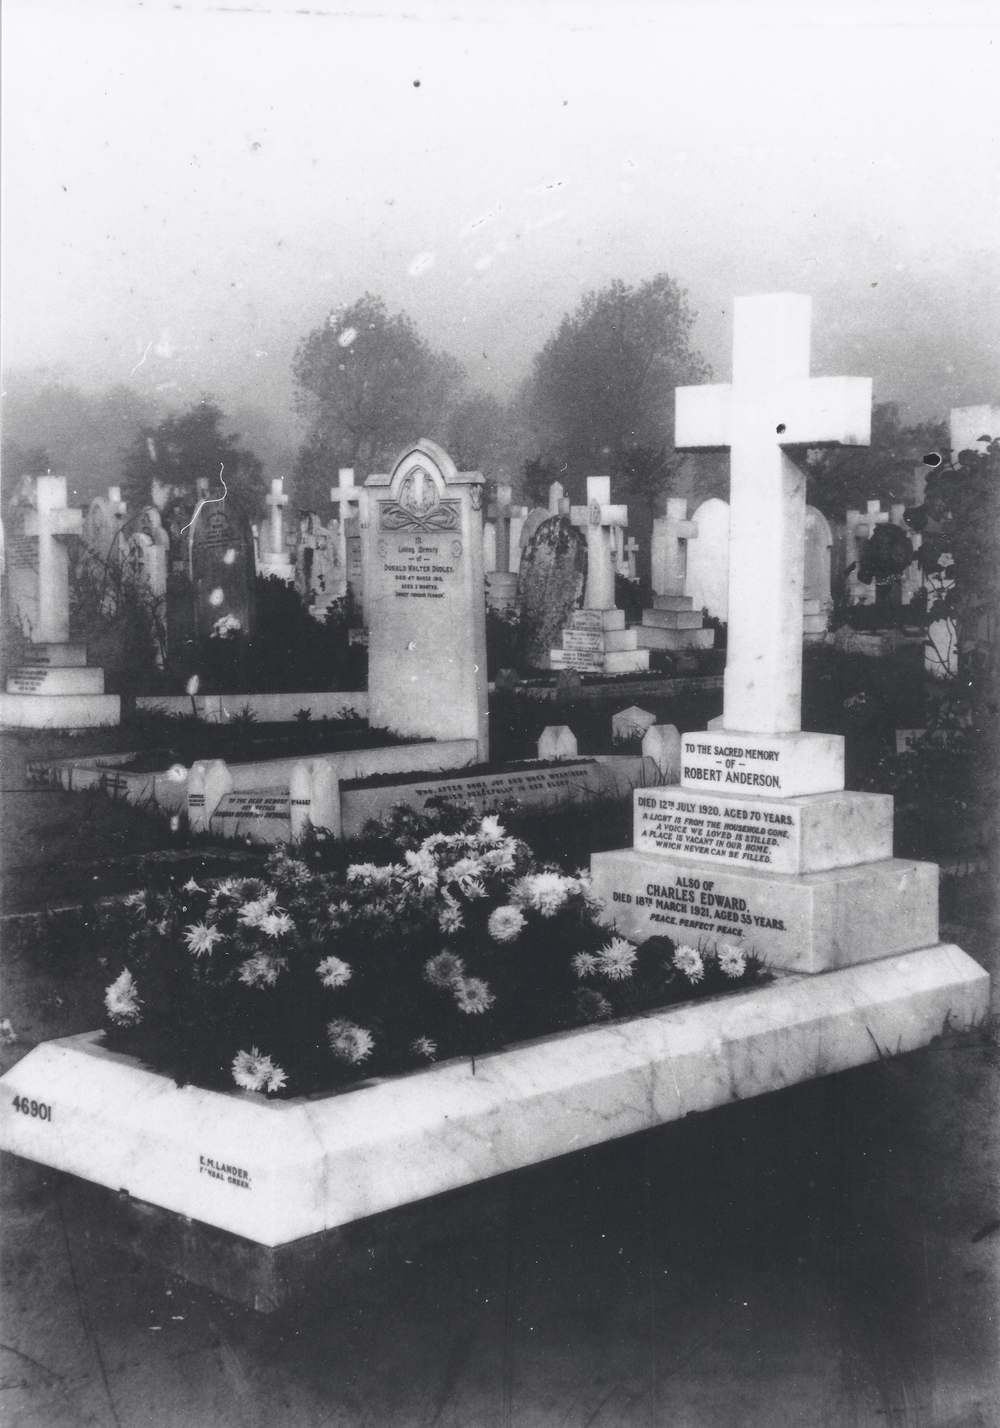 Graves of Robert Jnr. Anderson and Three Children